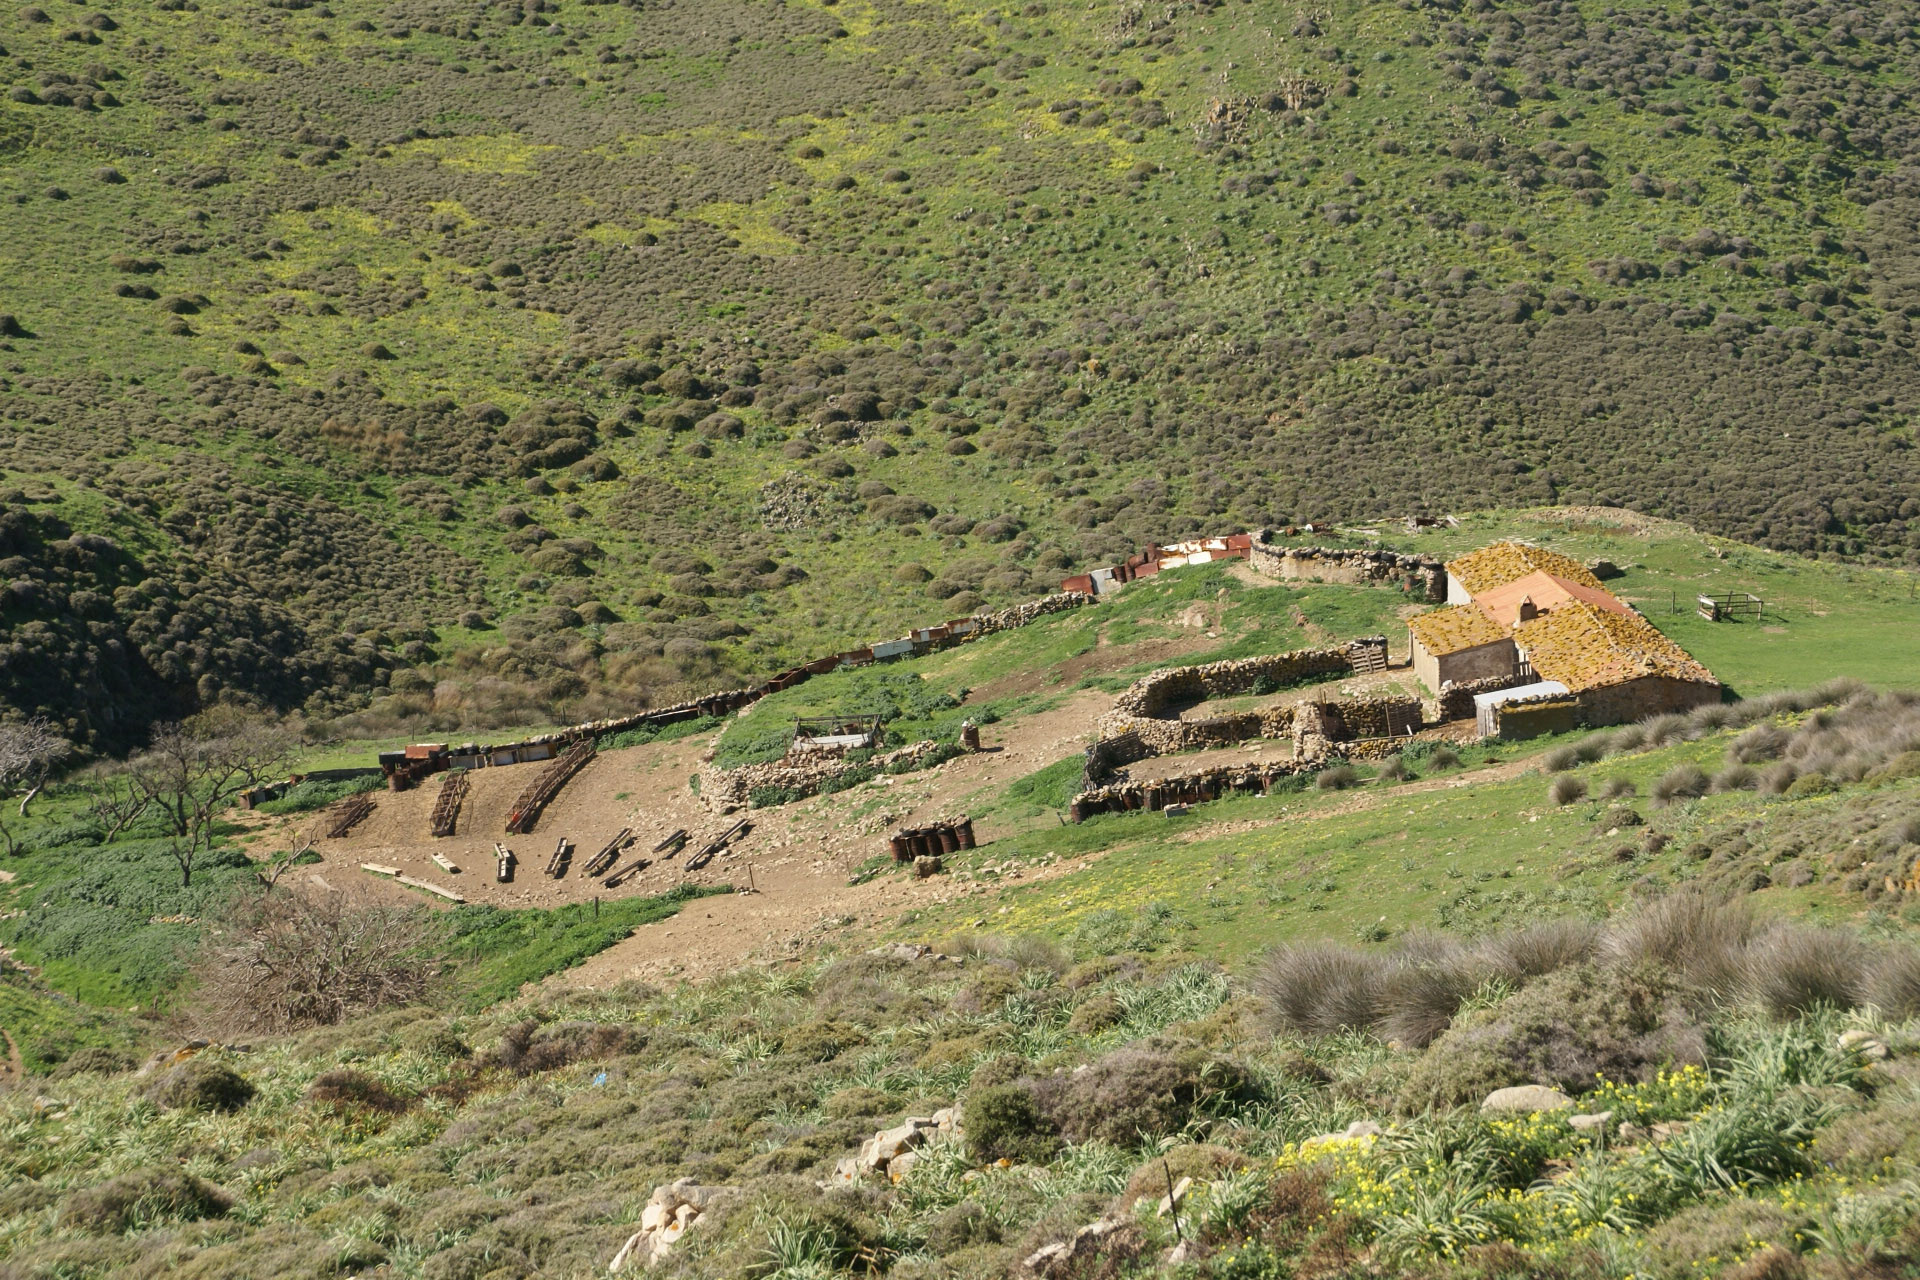 Efforts to inscribe the Mandra System of Lemnos Island in the national inventory of intangible heritage underway